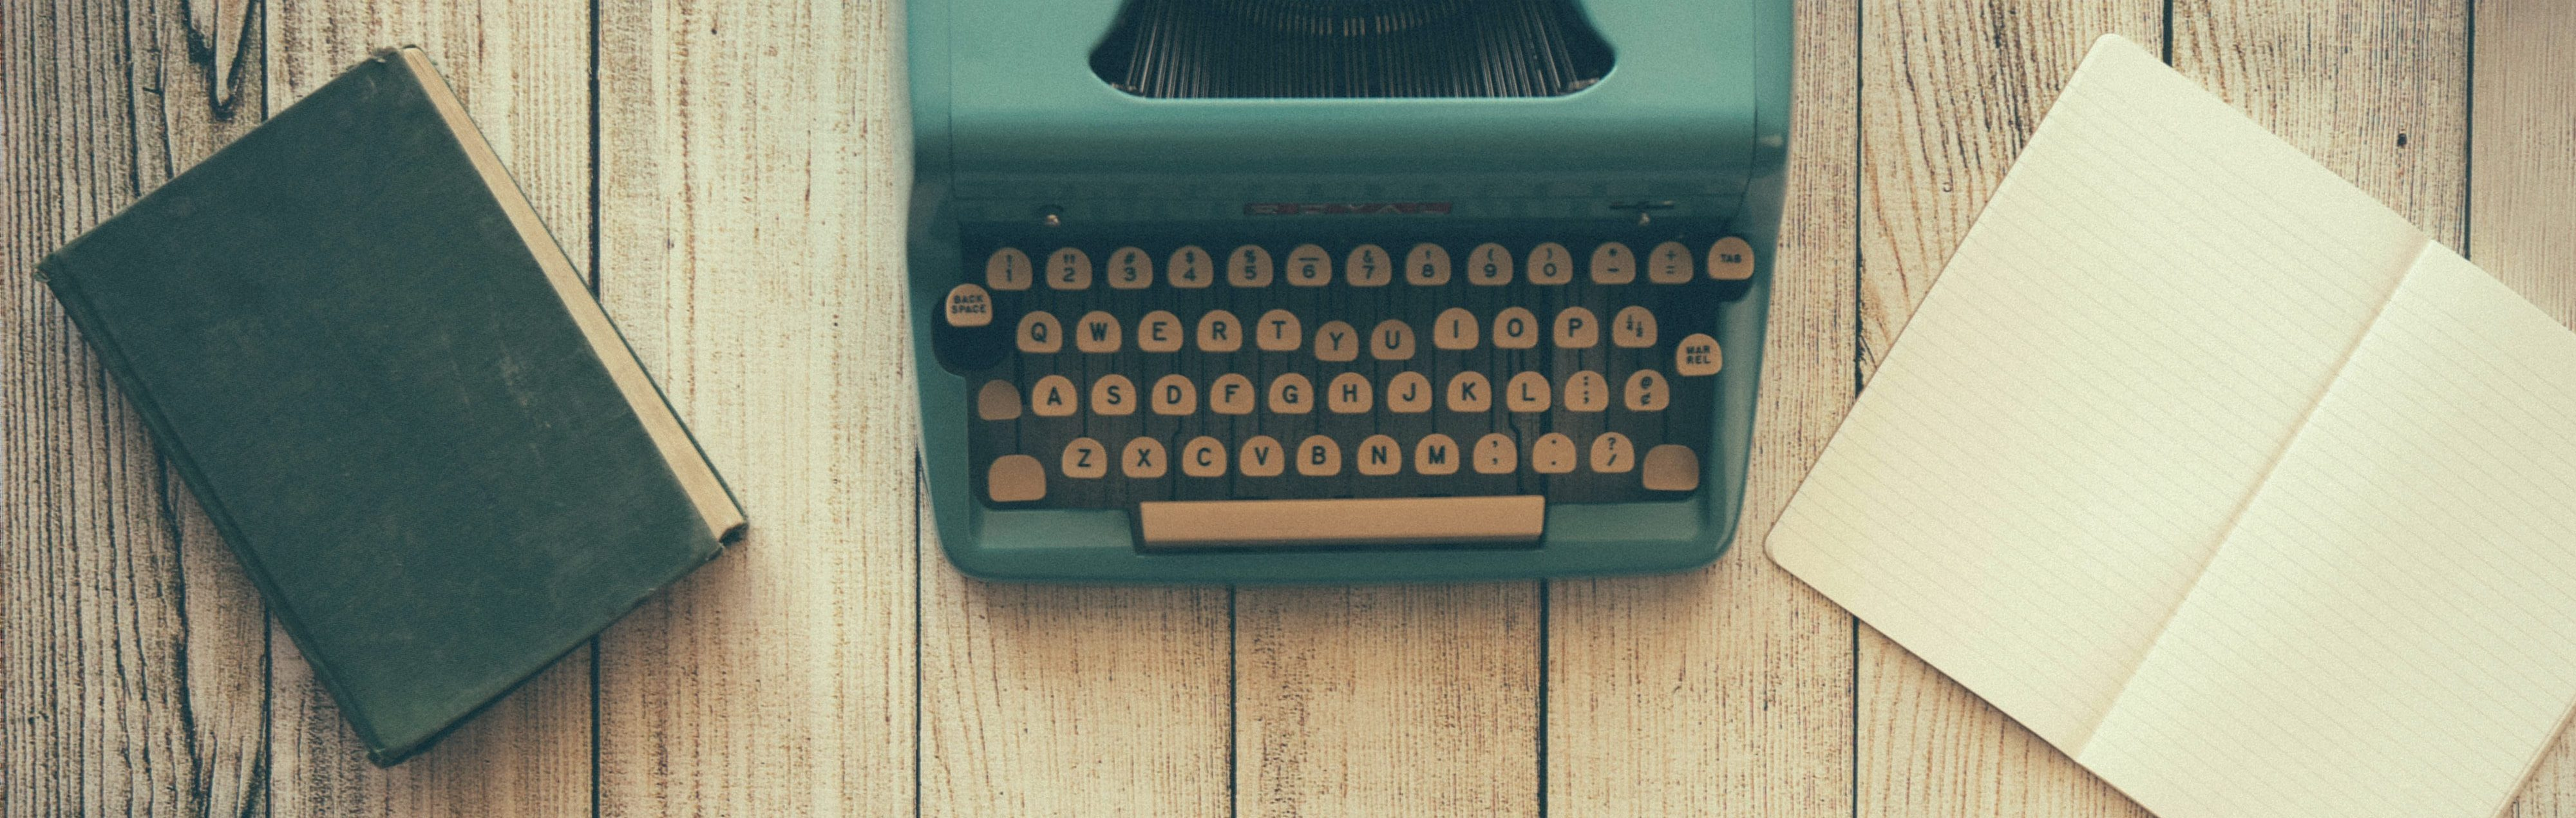 how to write for the juggle - typewriter image